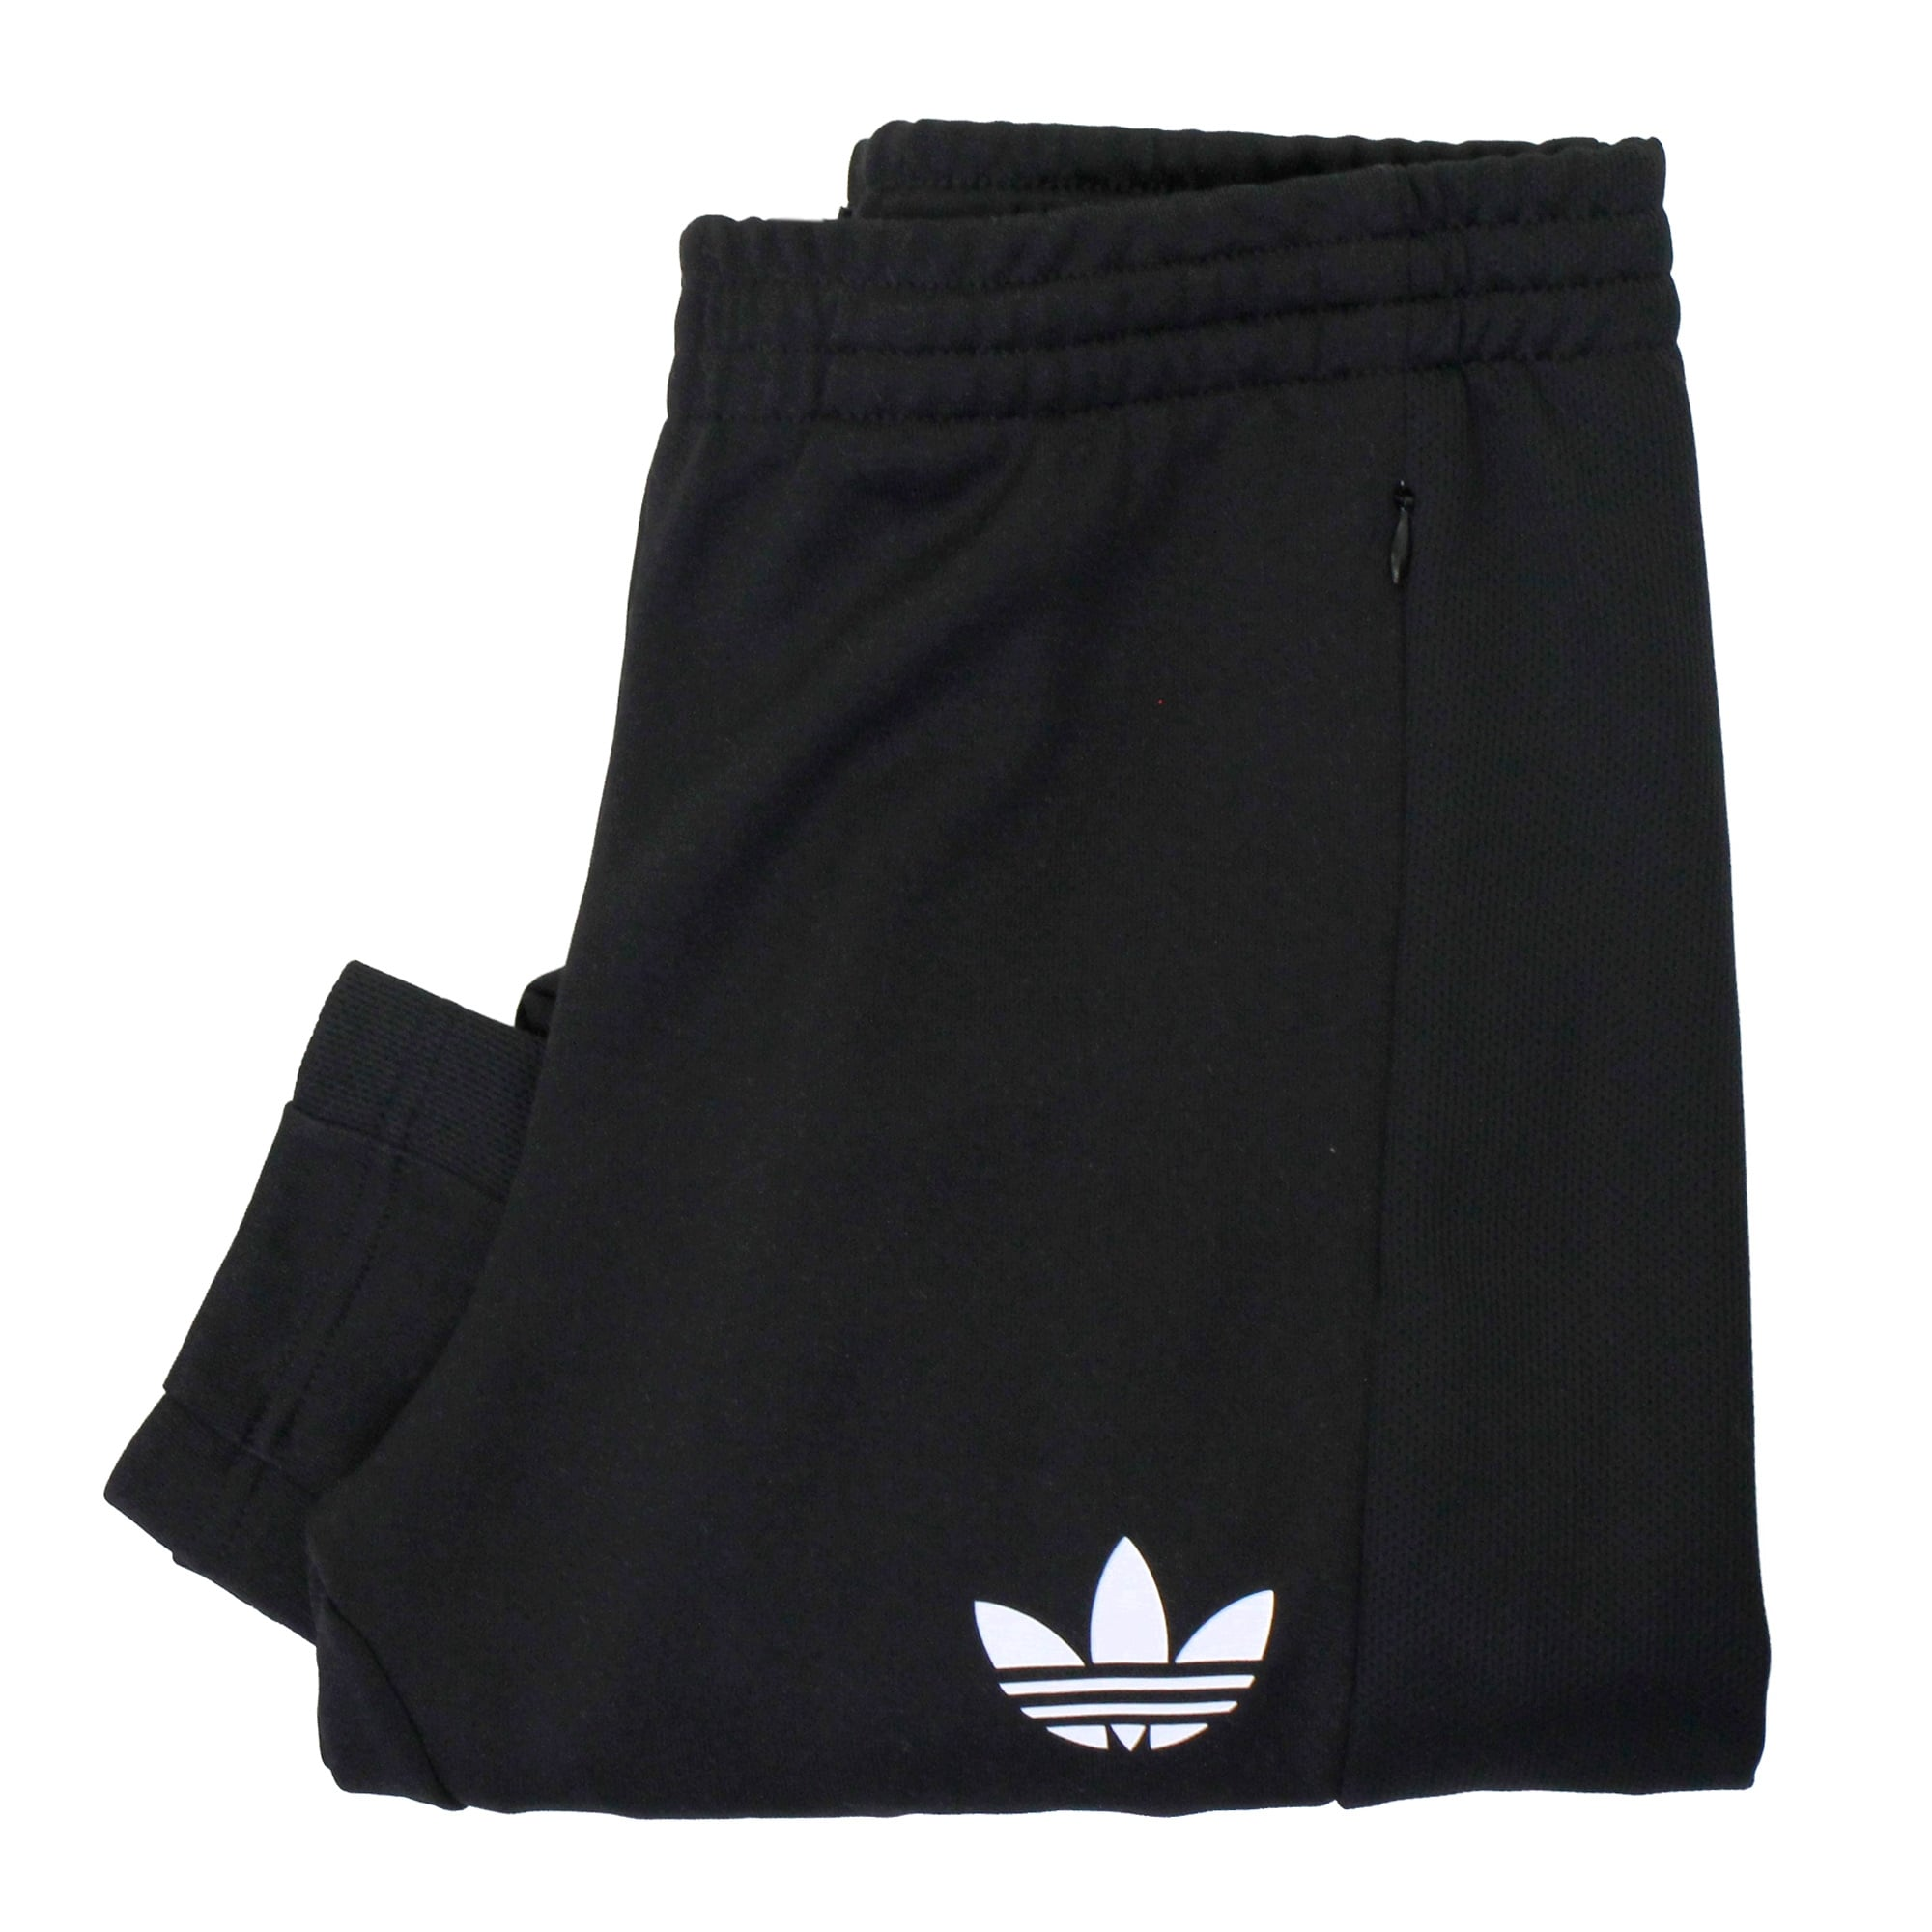 Image of Adidas Trefoil Football Club Black Track Pants AJ7673